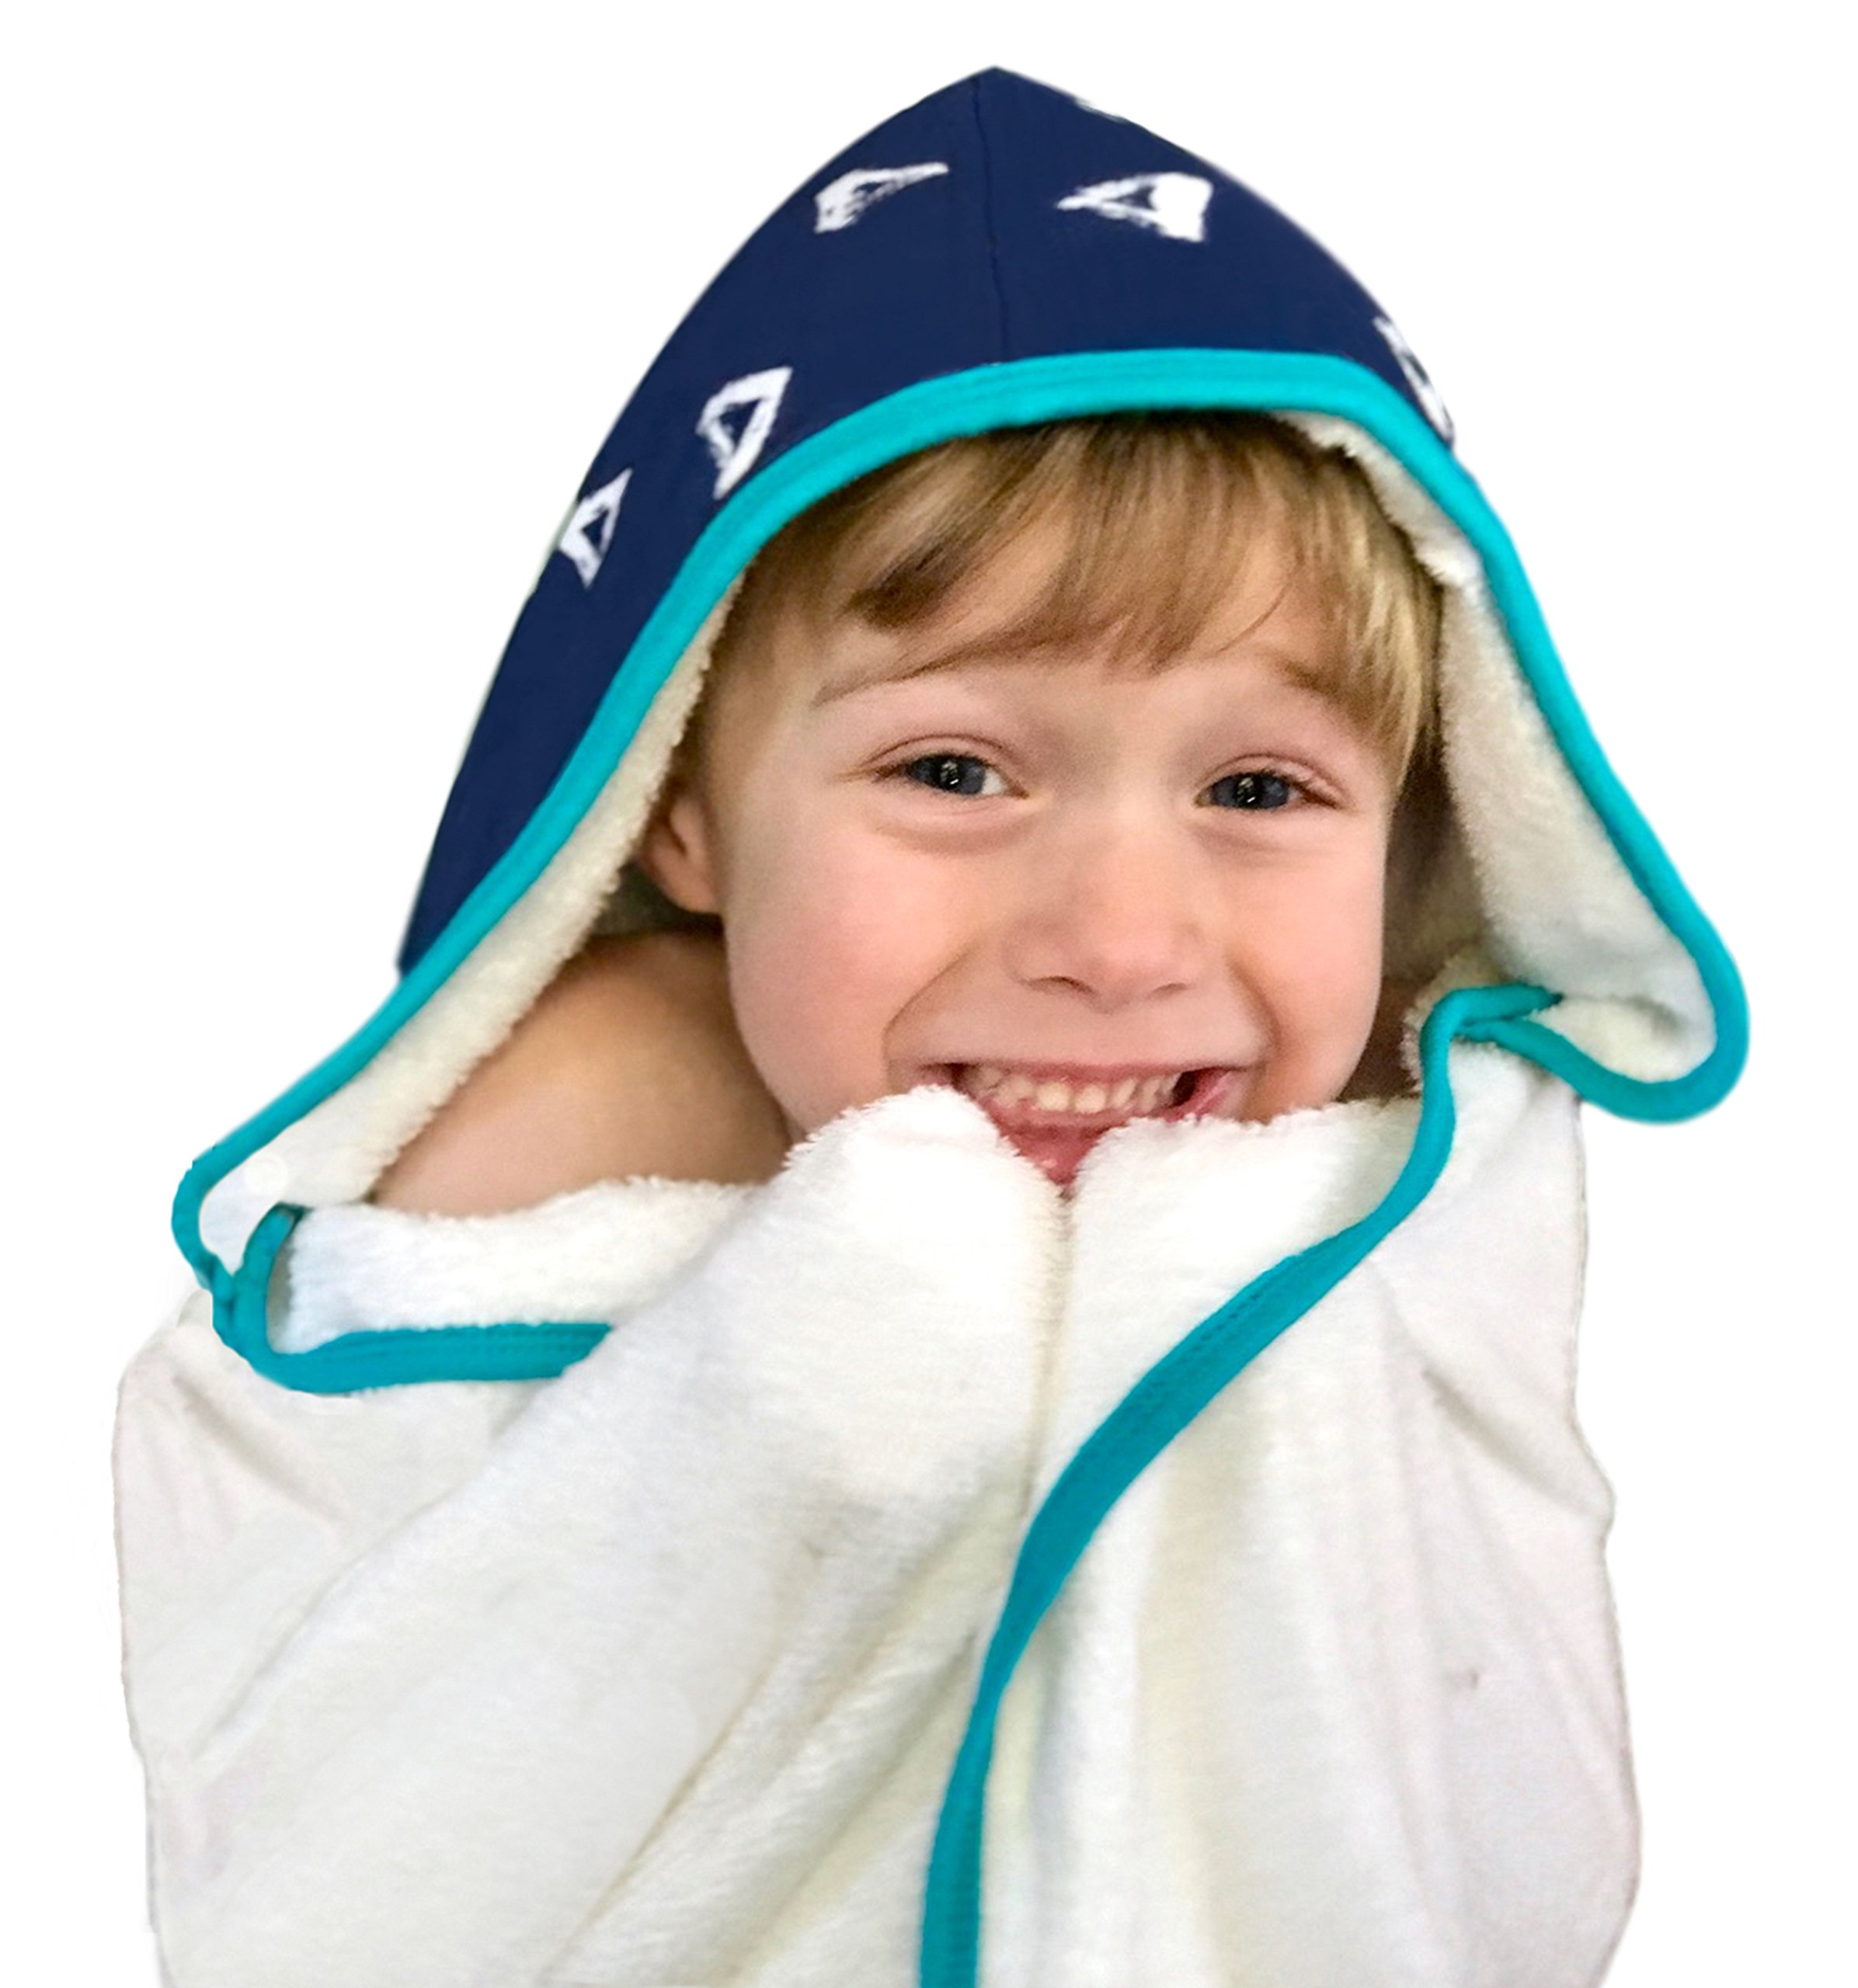 Amazon.com : Hooded Towel for Kids | Ultra Soft & Thick 500 GSM Bamboo Bath  Towel with Hood for Warmer Boys and Girls After Bath, Beach, ...